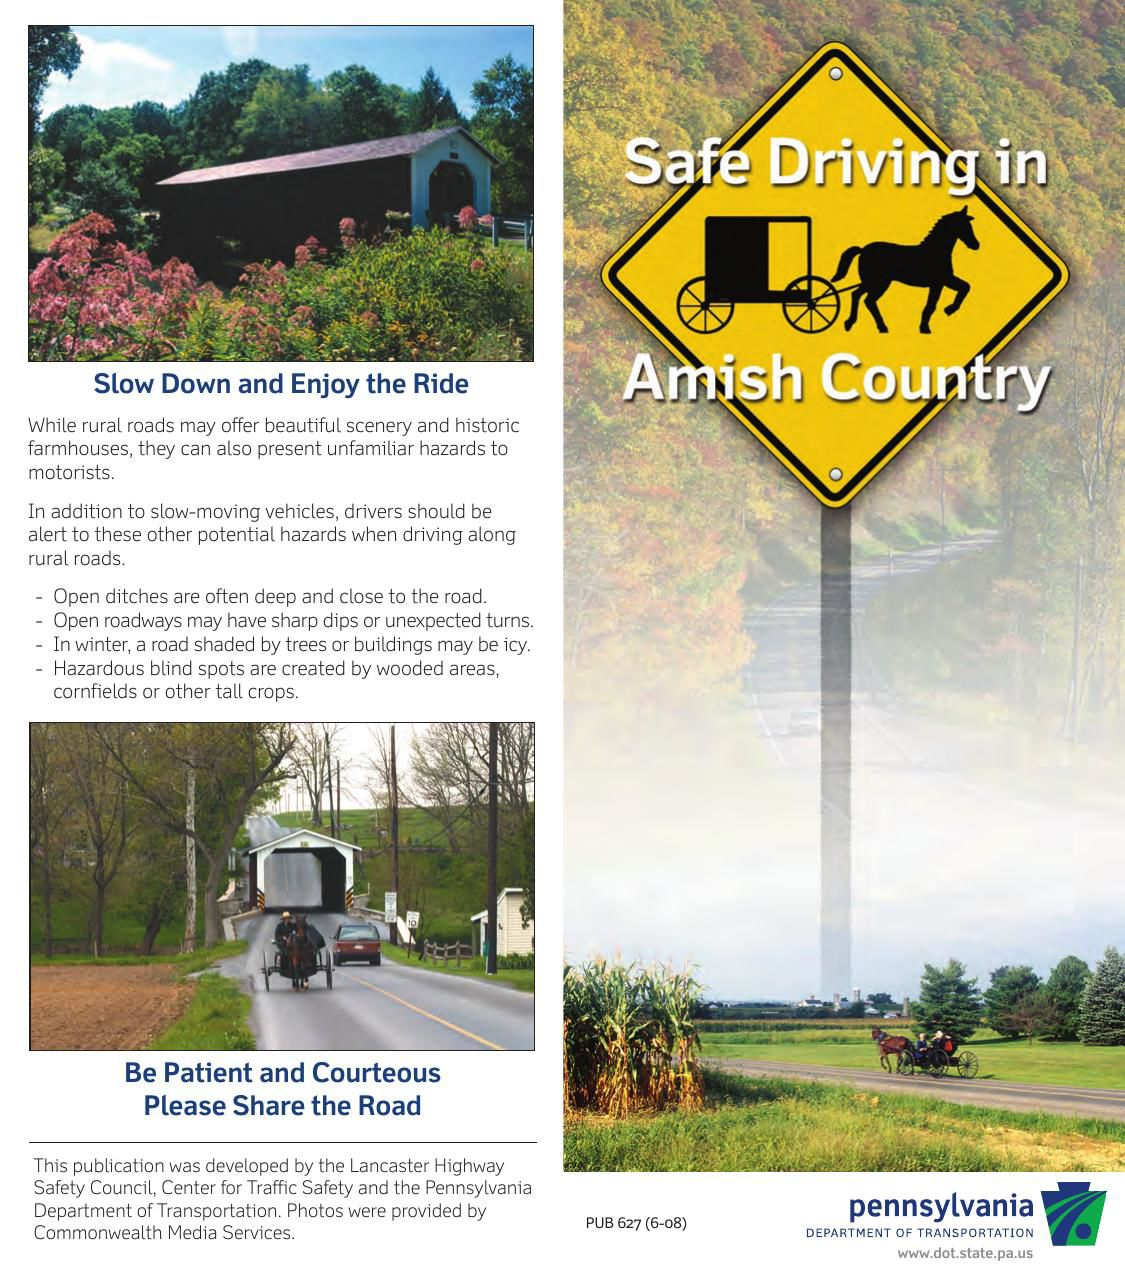 Safe Driving in Amish Country, from PennDOT